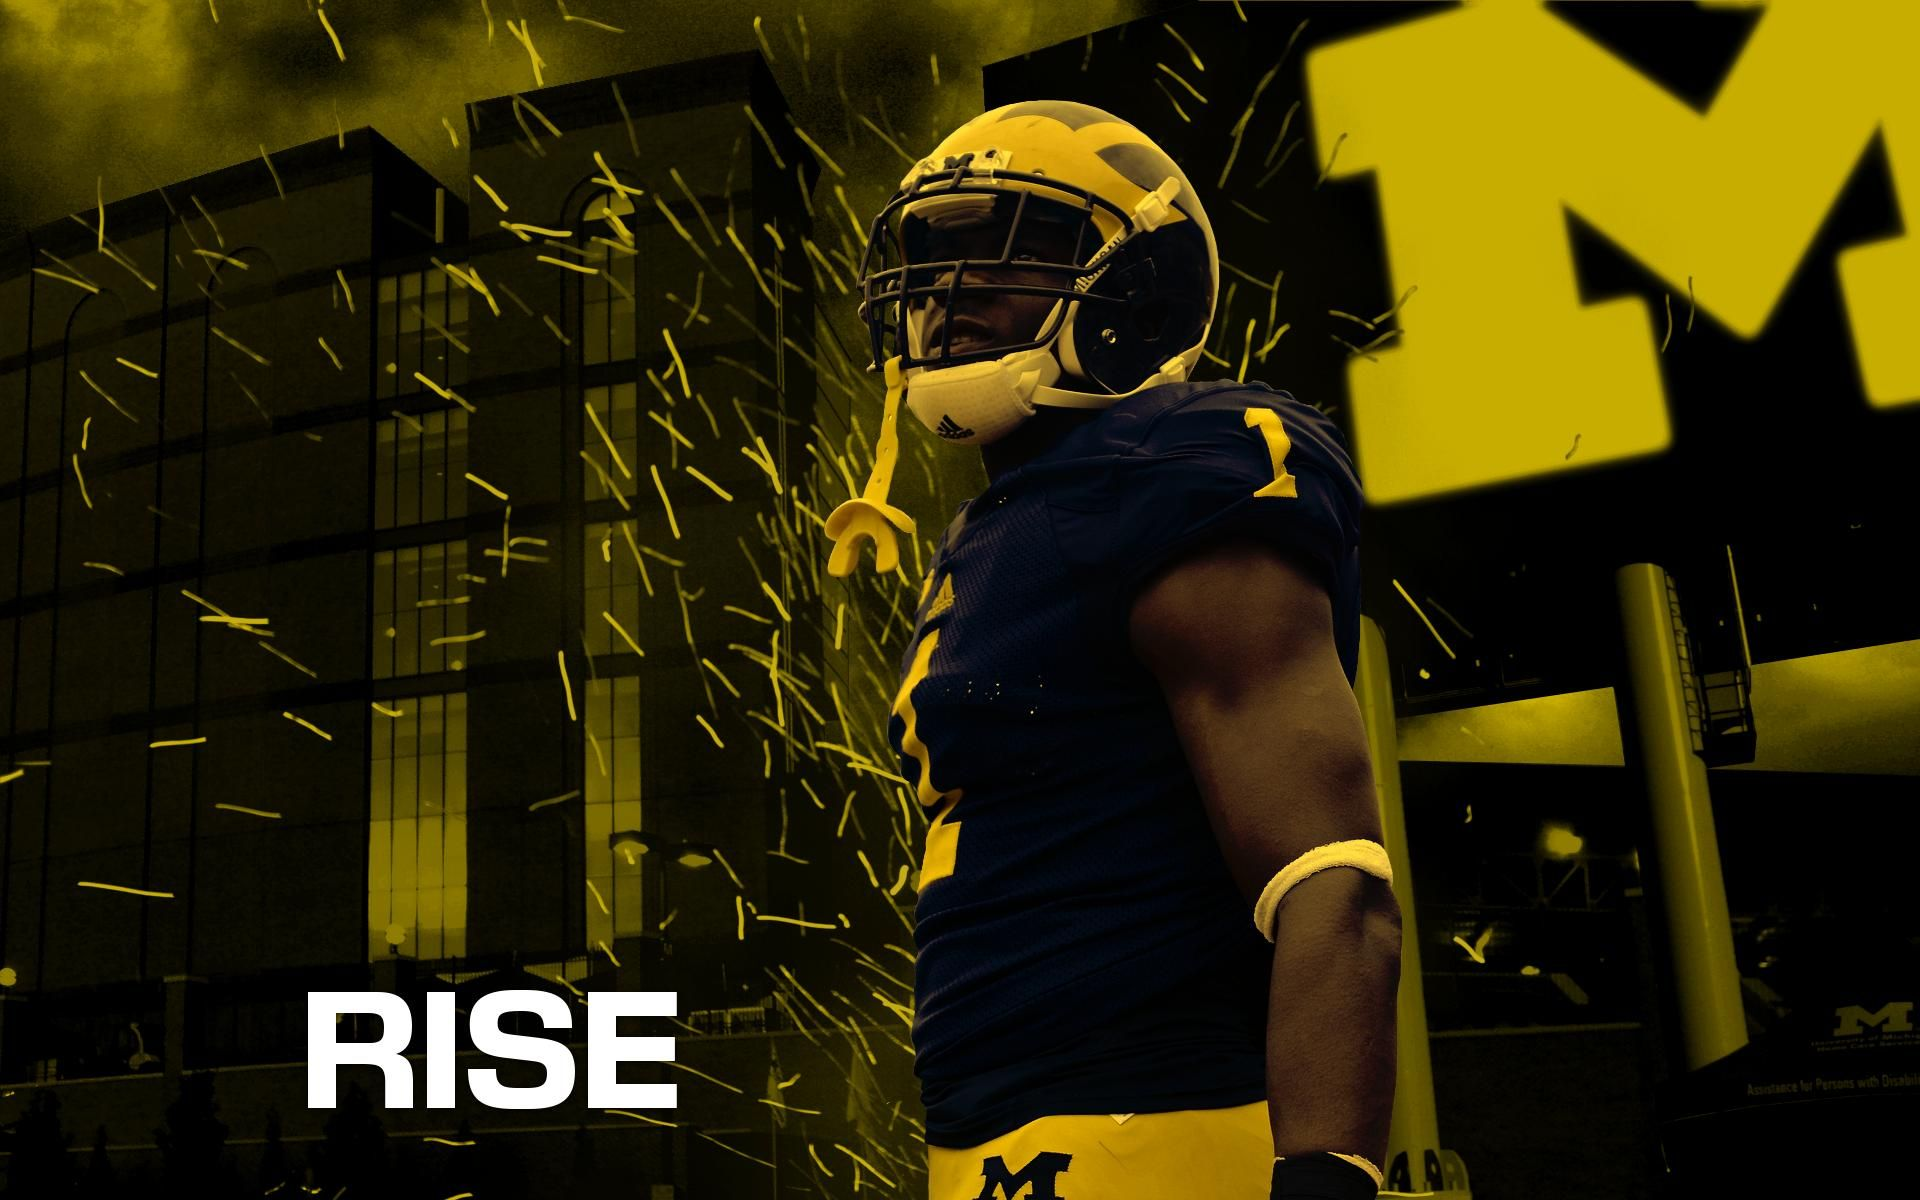 Michigan Wolverines Rising Up Michigan Wolverines Football Wolverines Football Michigan Wolverines